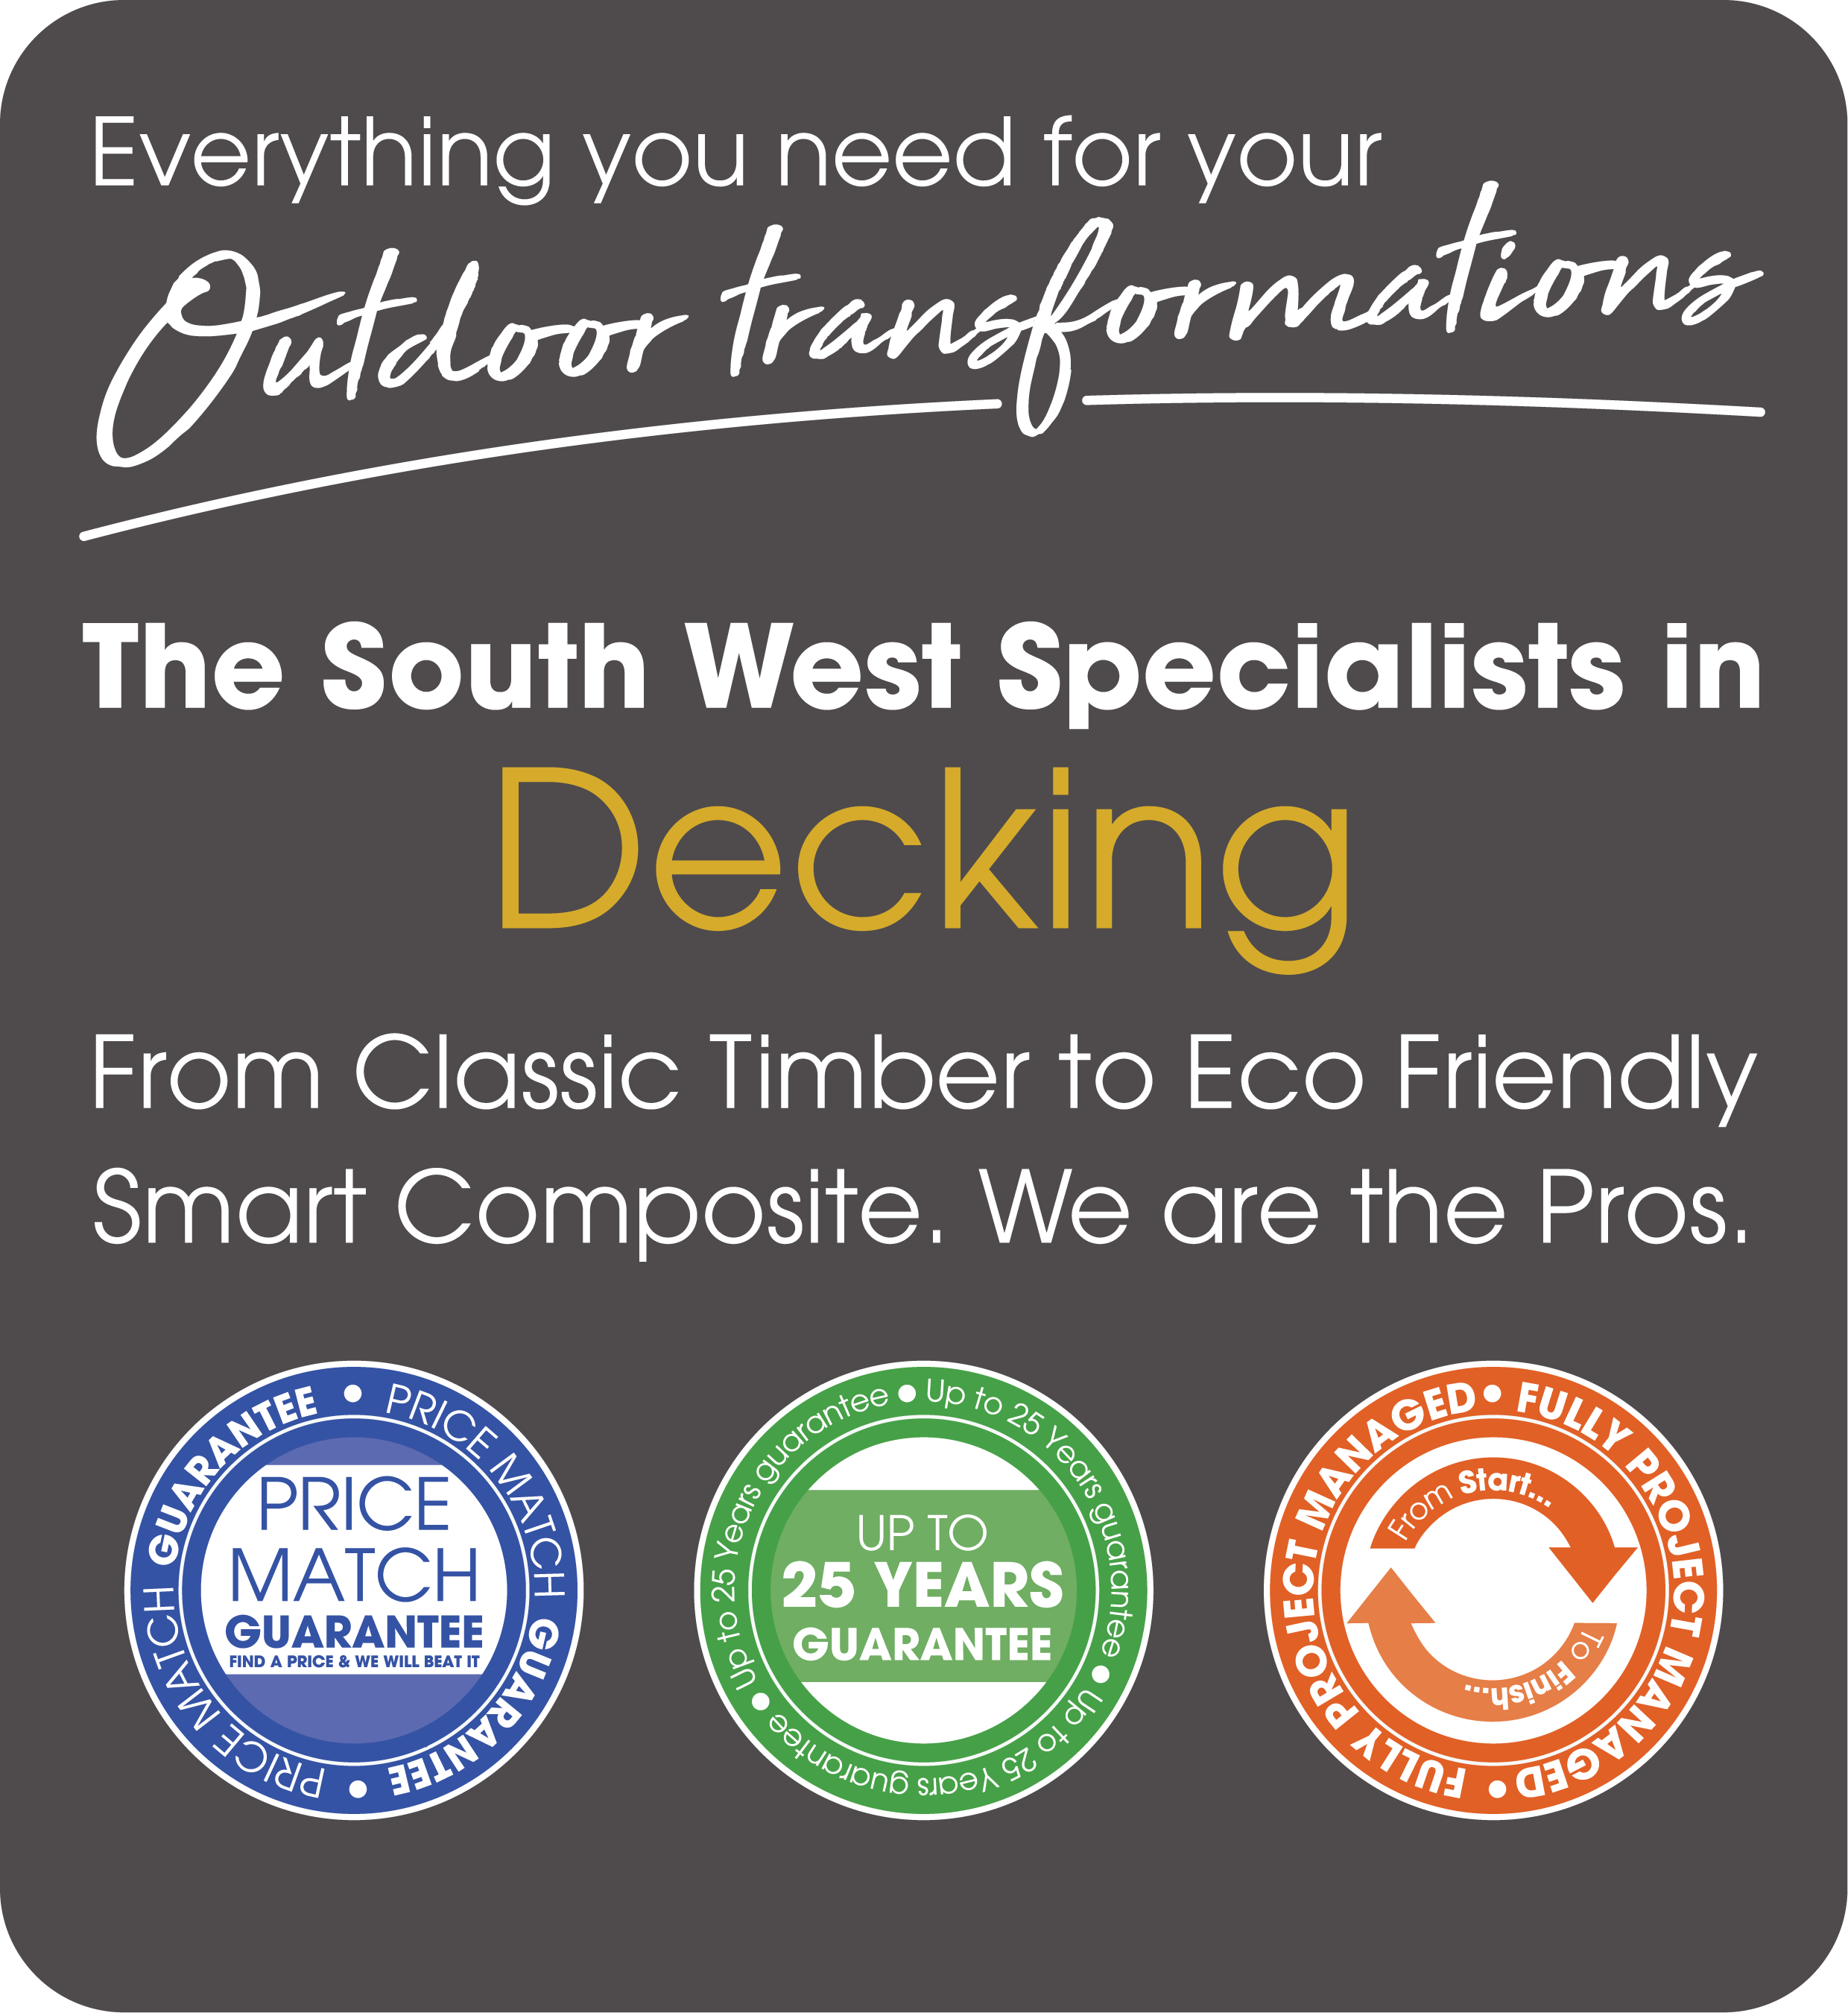 South West Specialists